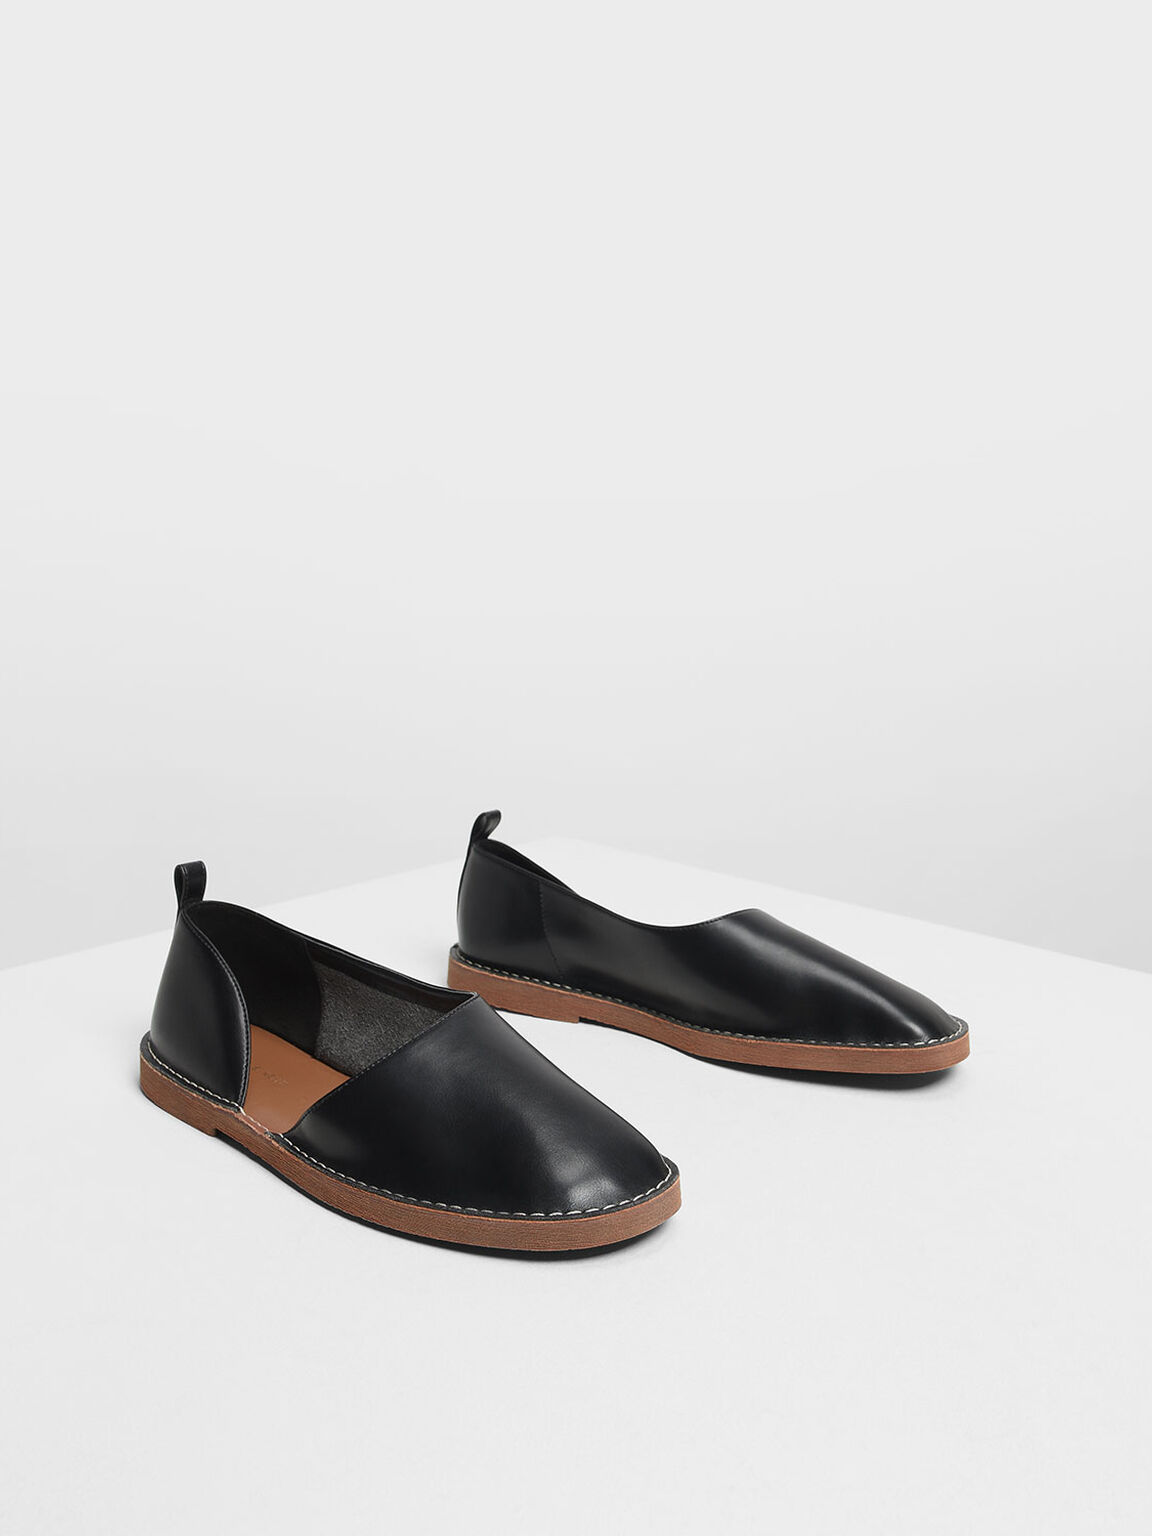 D'Orsay Loafers, Black, hi-res